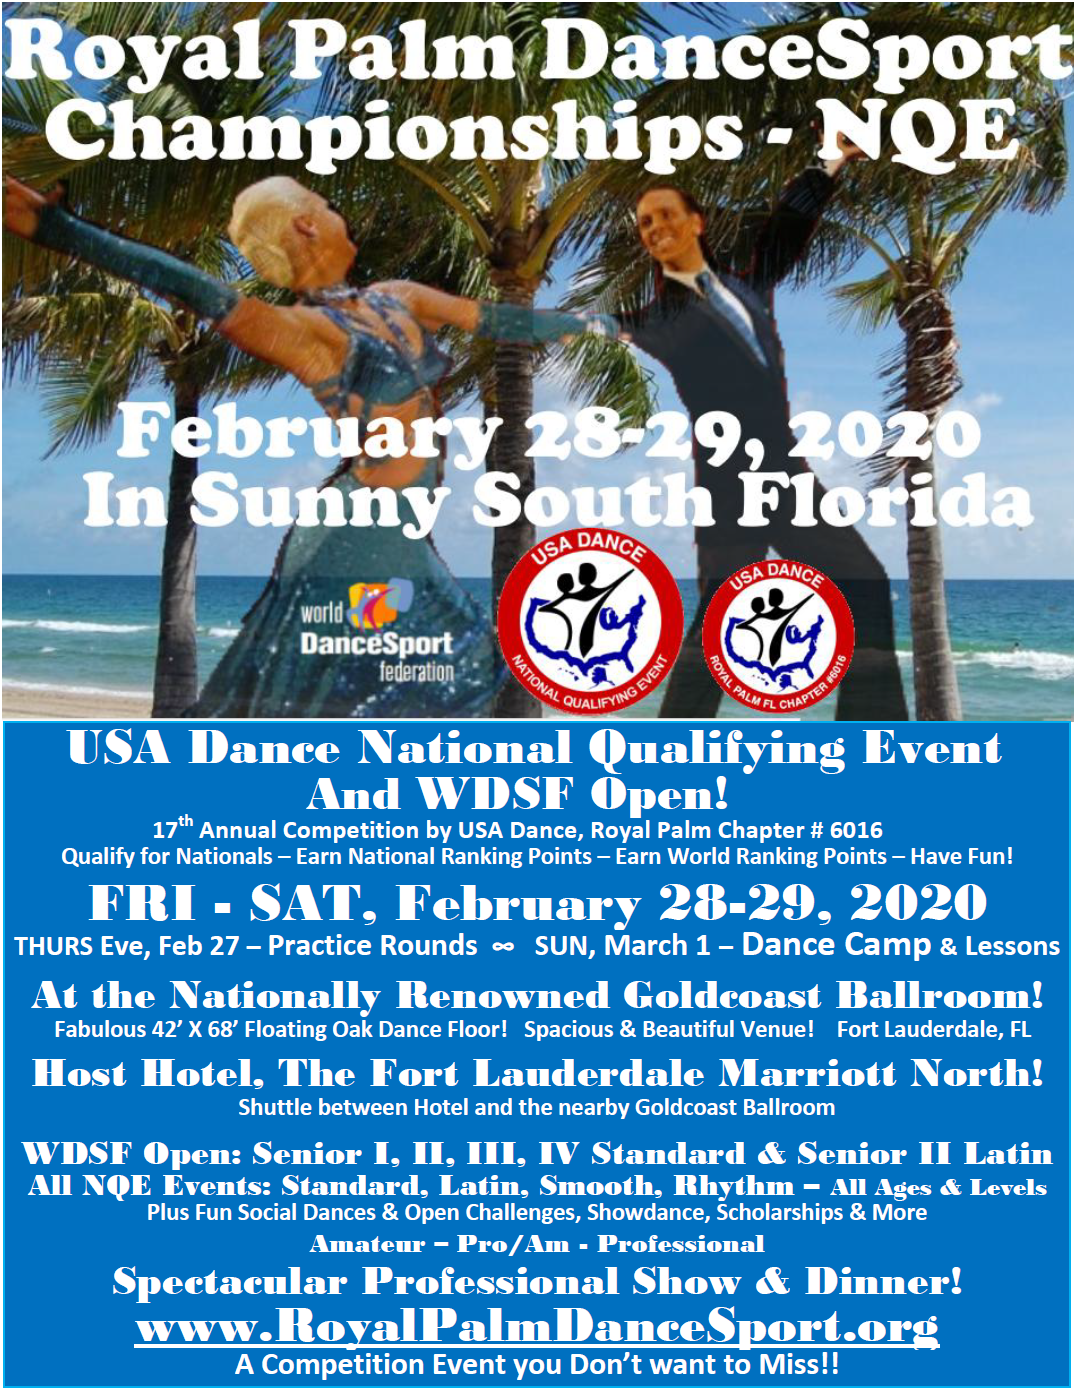 Royal Palm DanceSport Championships NQE & WDSF Open - February 28-29, 2020 - A Competition Event you Don't want to Miss!!